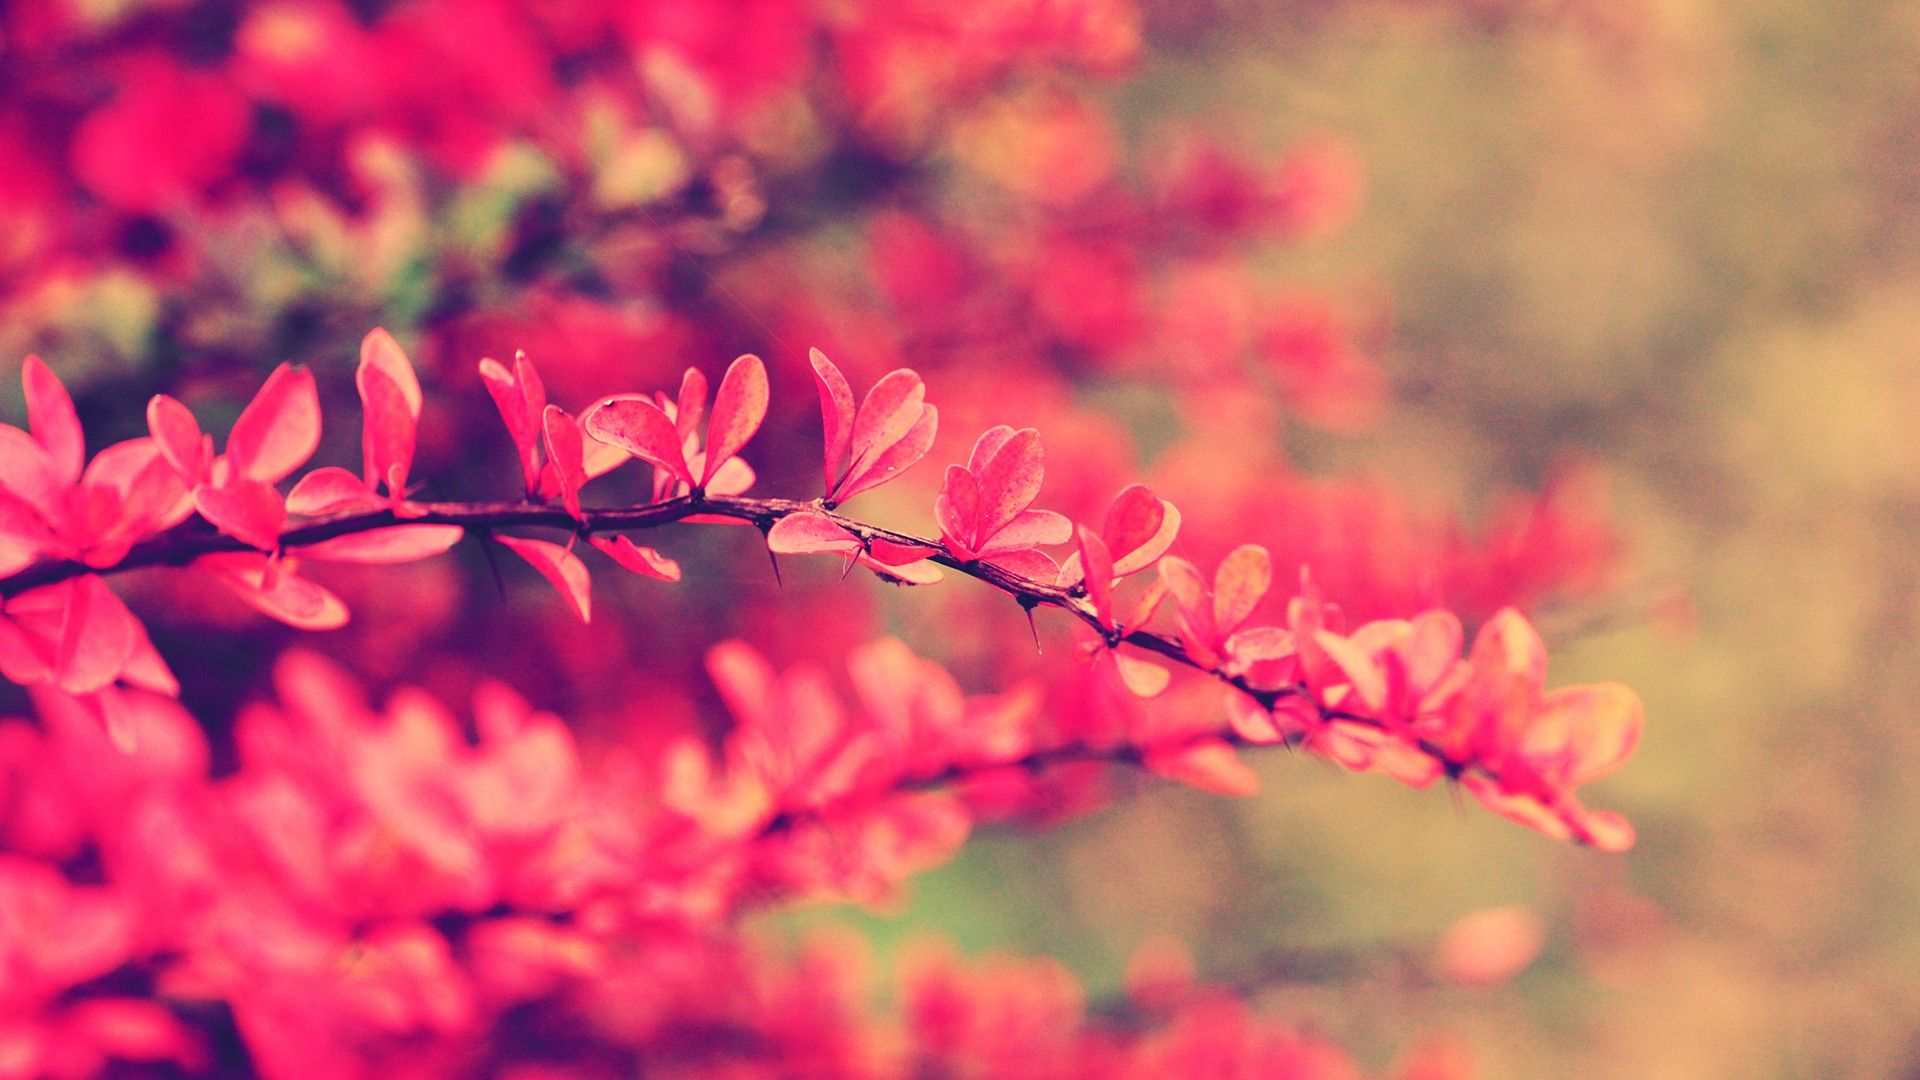 Pink flowers wallpaper 19327 1920x1080 px hdwallsource pink flowers wallpaper 19327 voltagebd Image collections